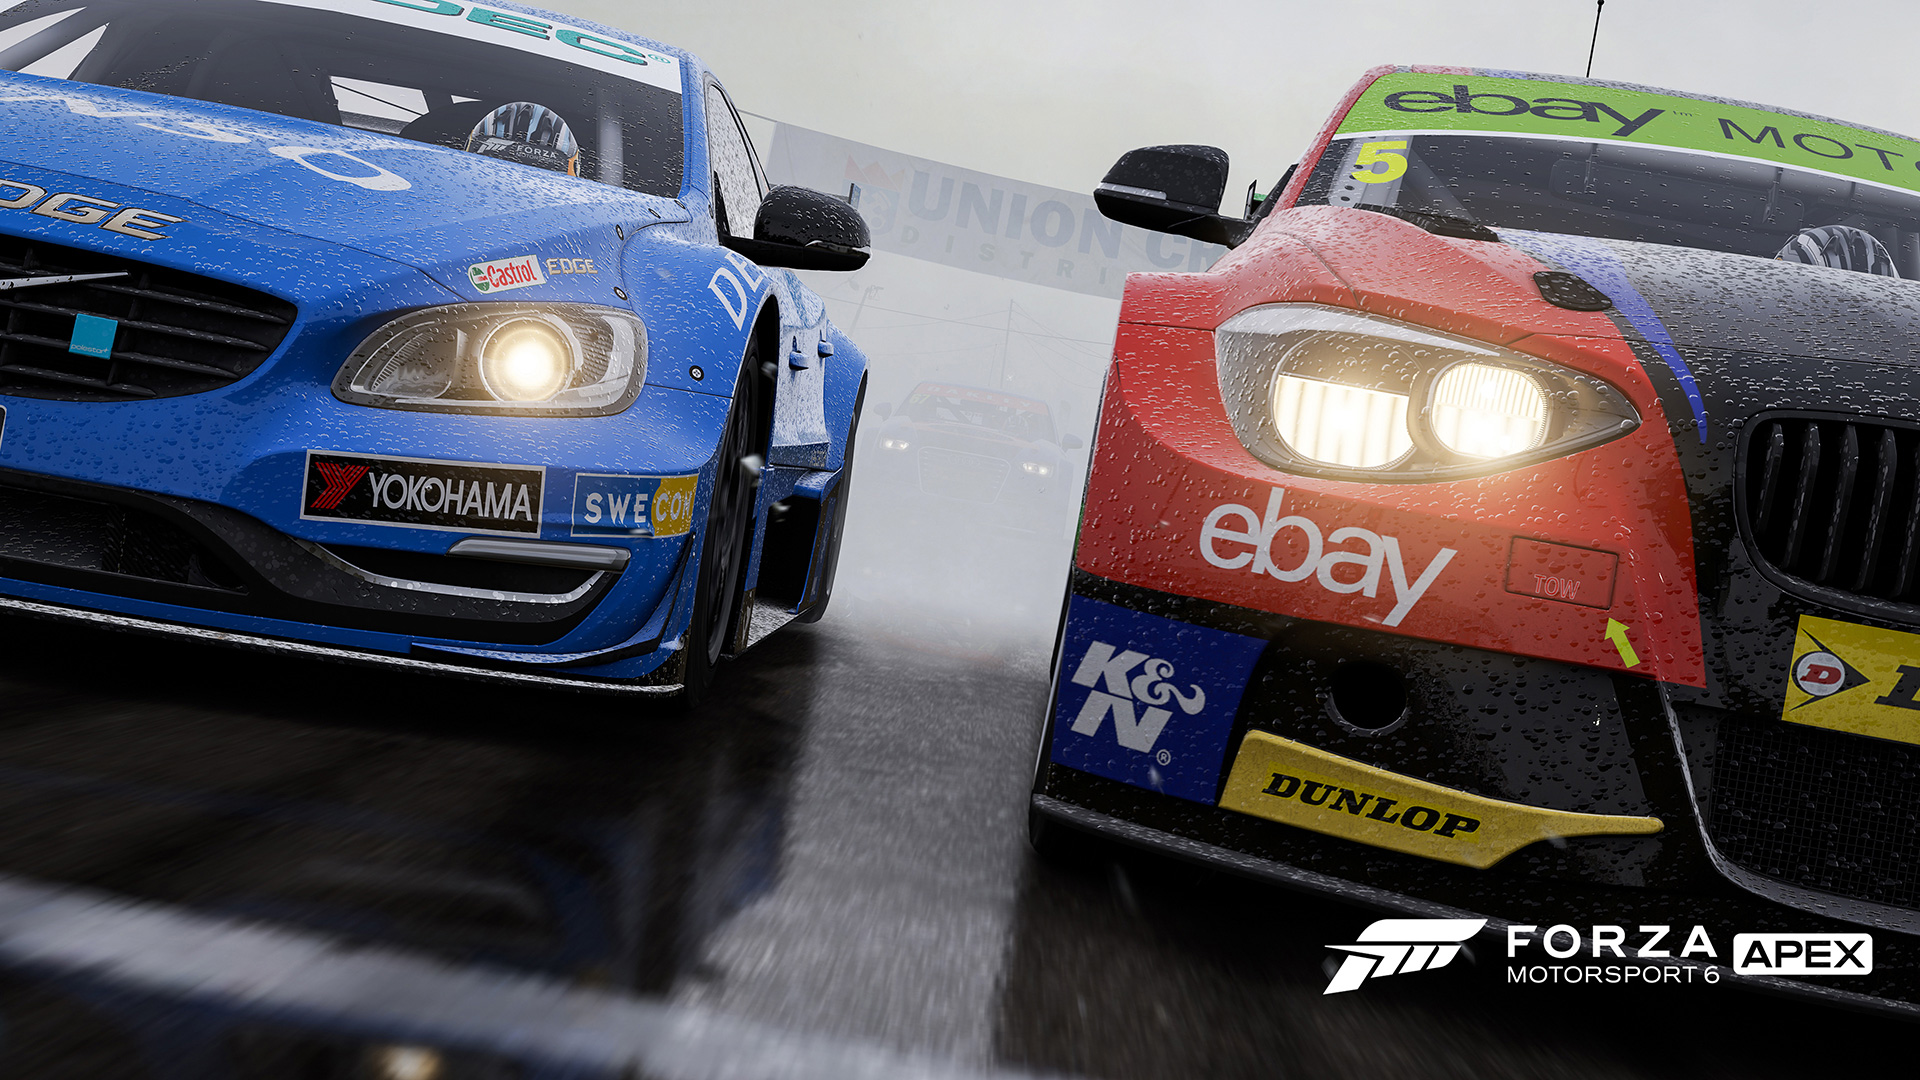 Forza Motorsport 6: Apex revela fecha de beta y requisitos para PC